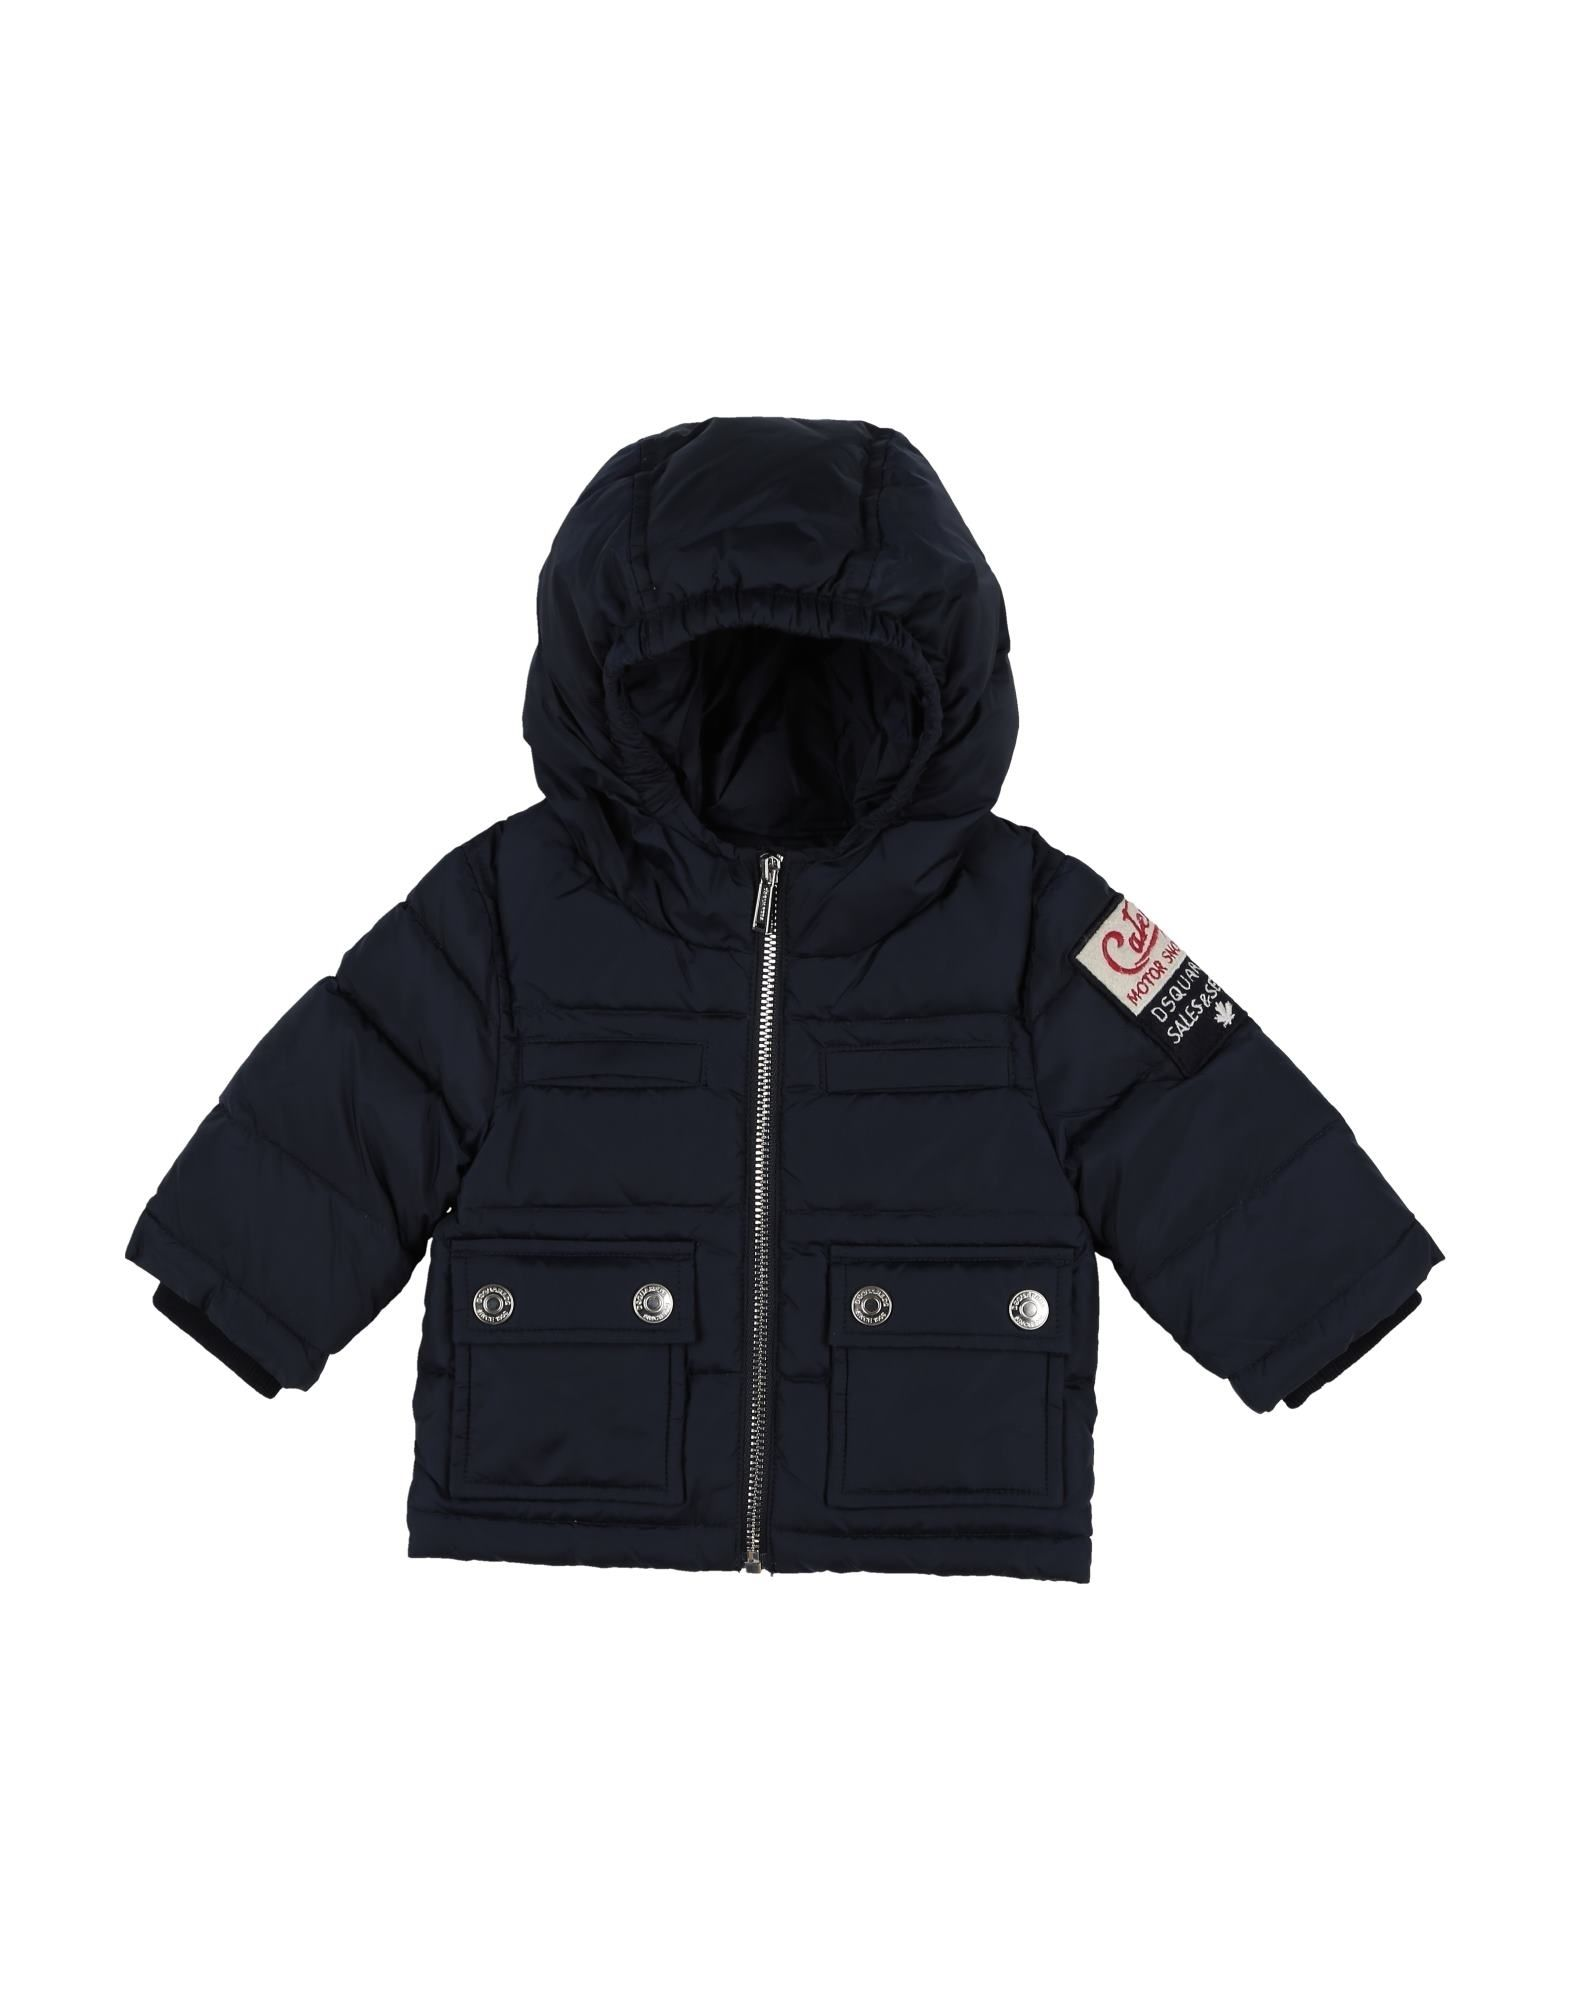 2d947f5d8 Down Jackets for baby girl   toddler 0-24 months